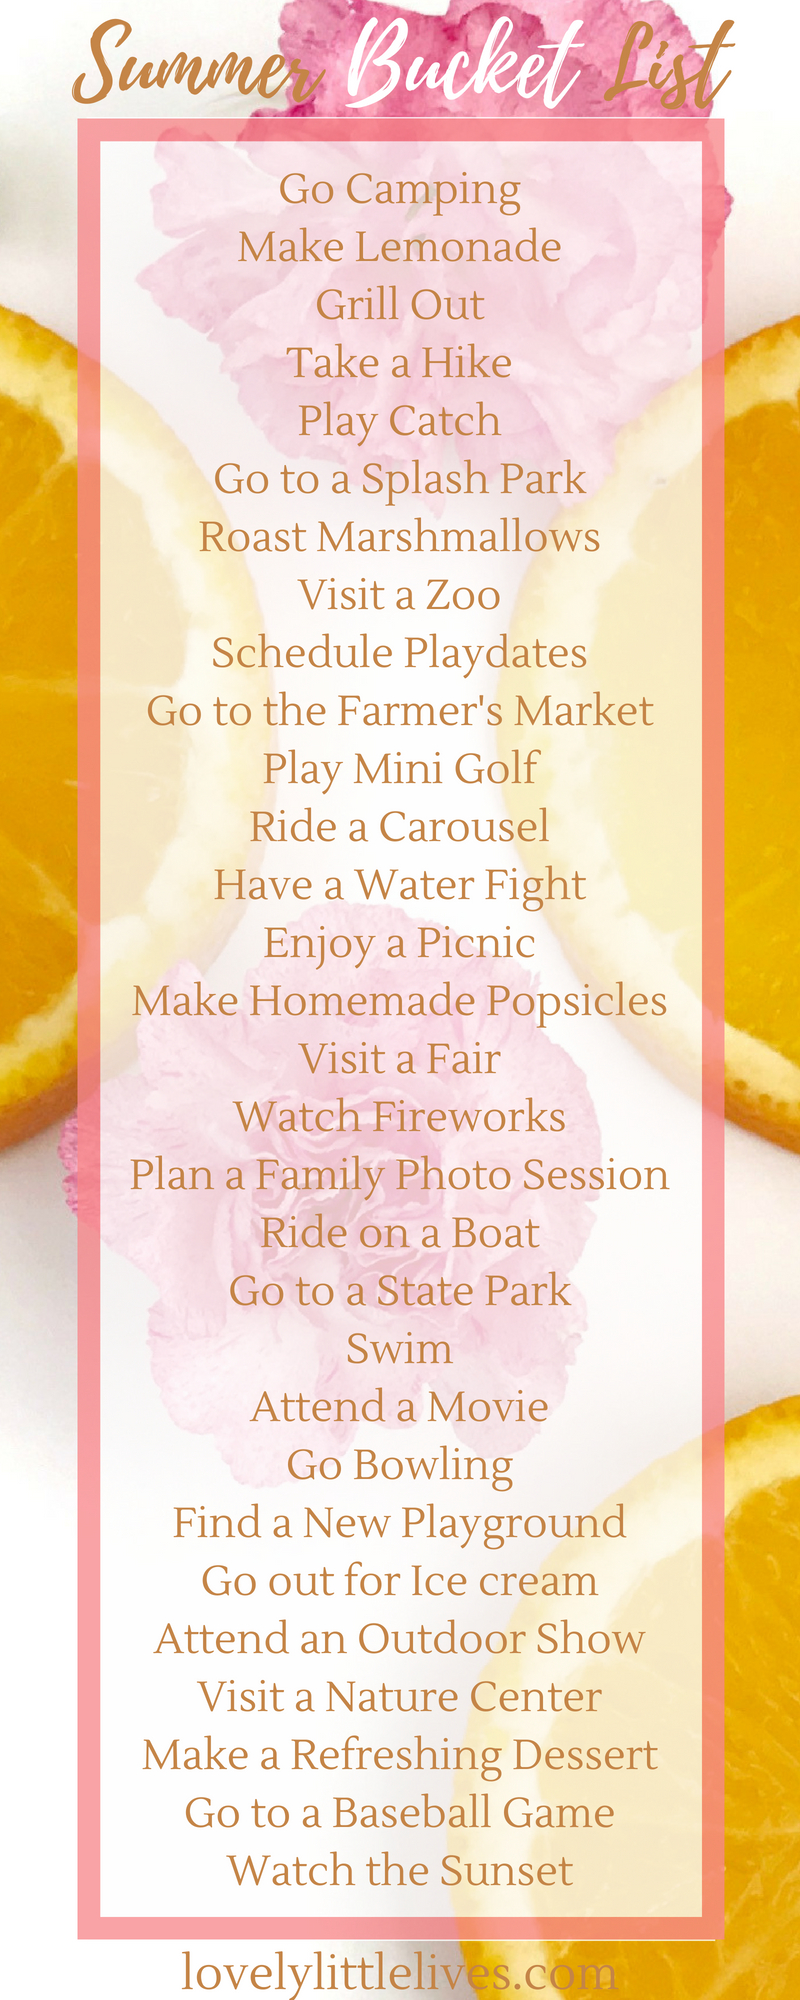 Grab a free summer bucket list to check off with your family! #summer #sumerbucketlist #familysummer